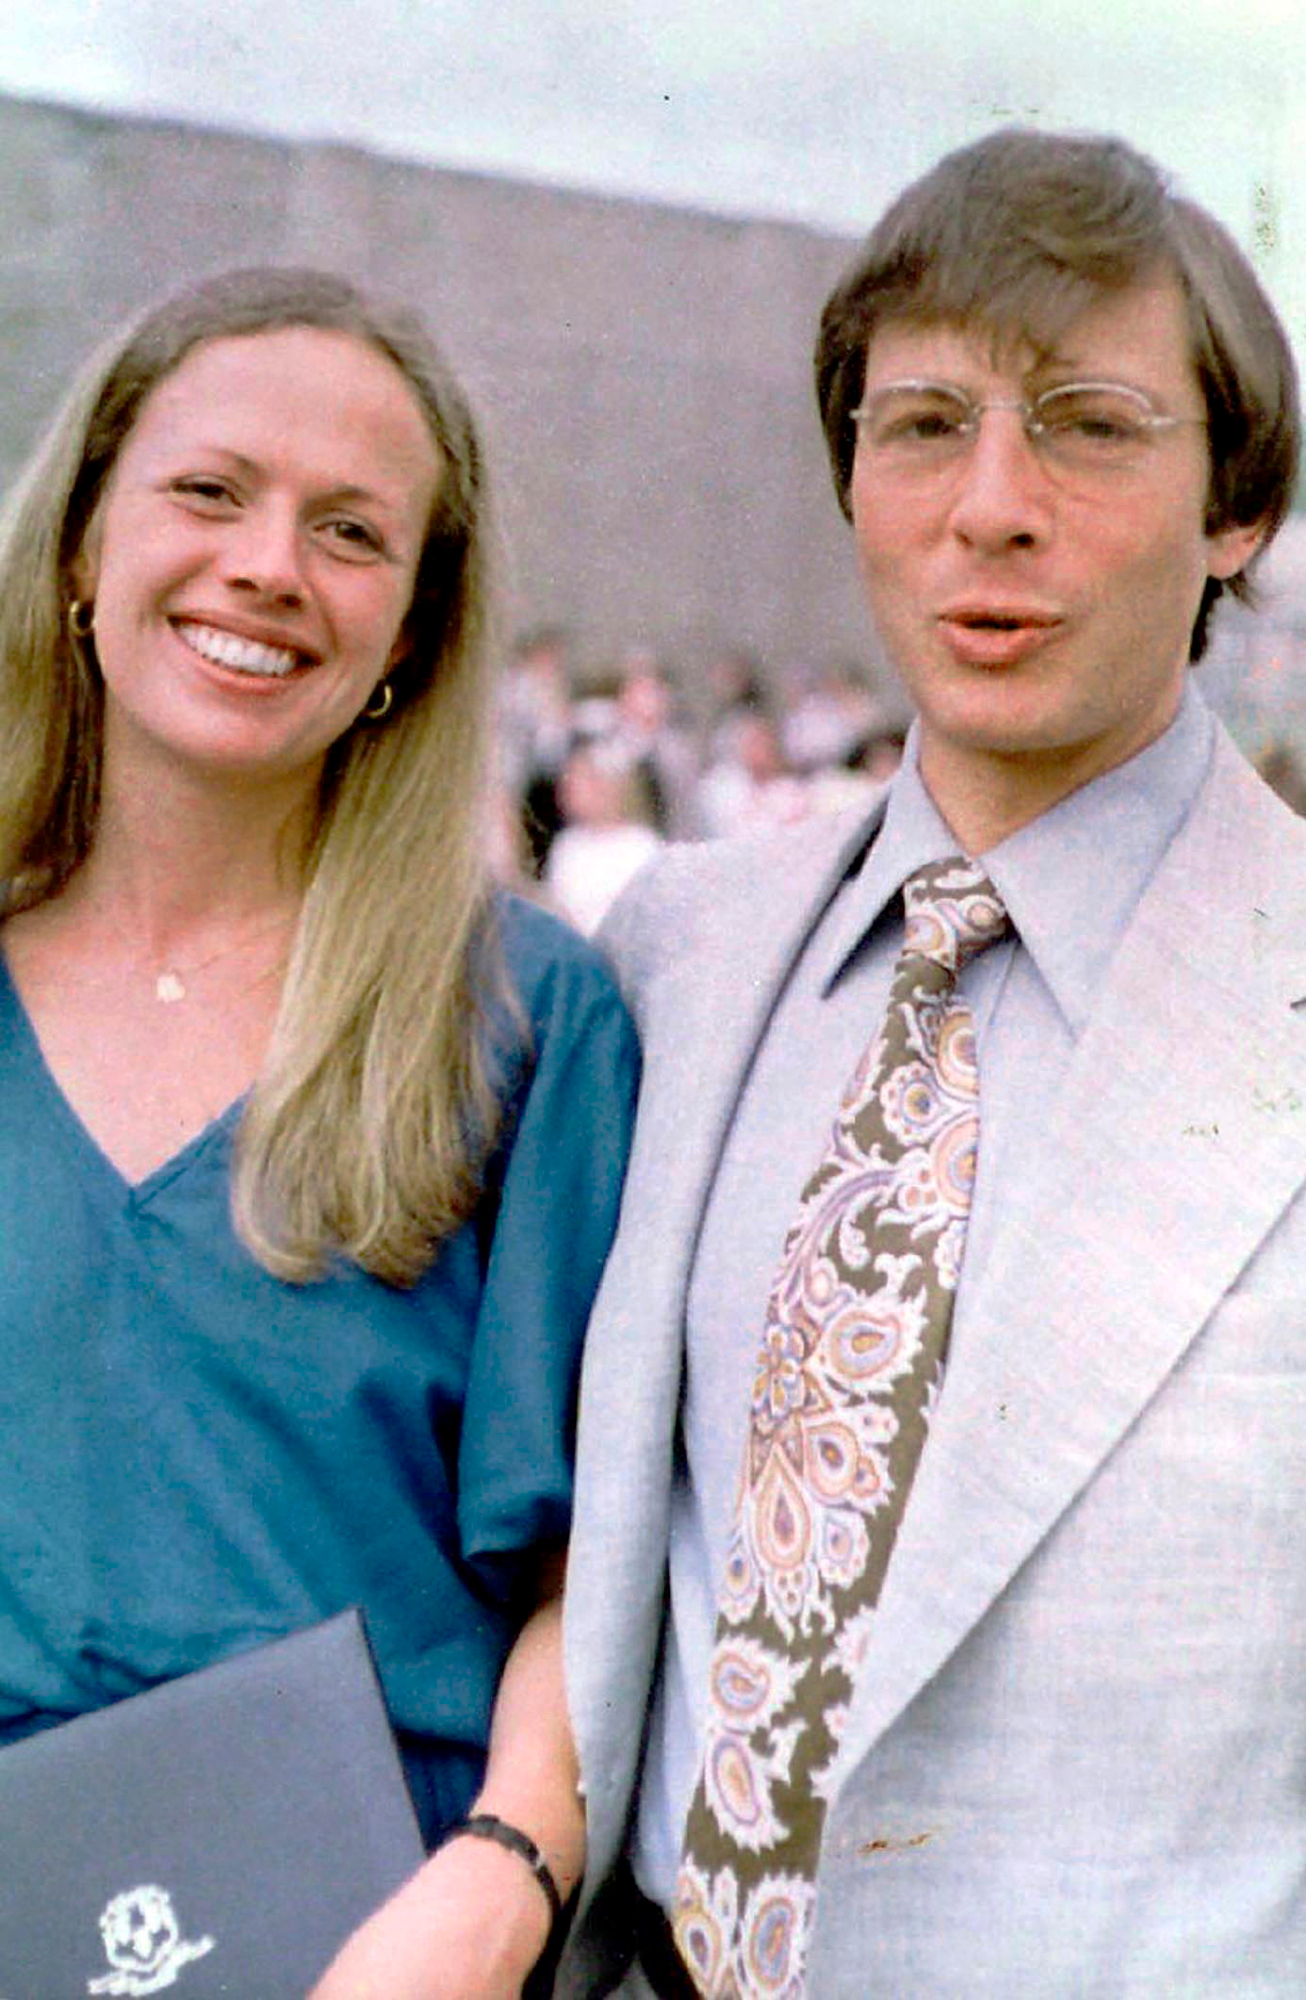 robert and Kathy durst